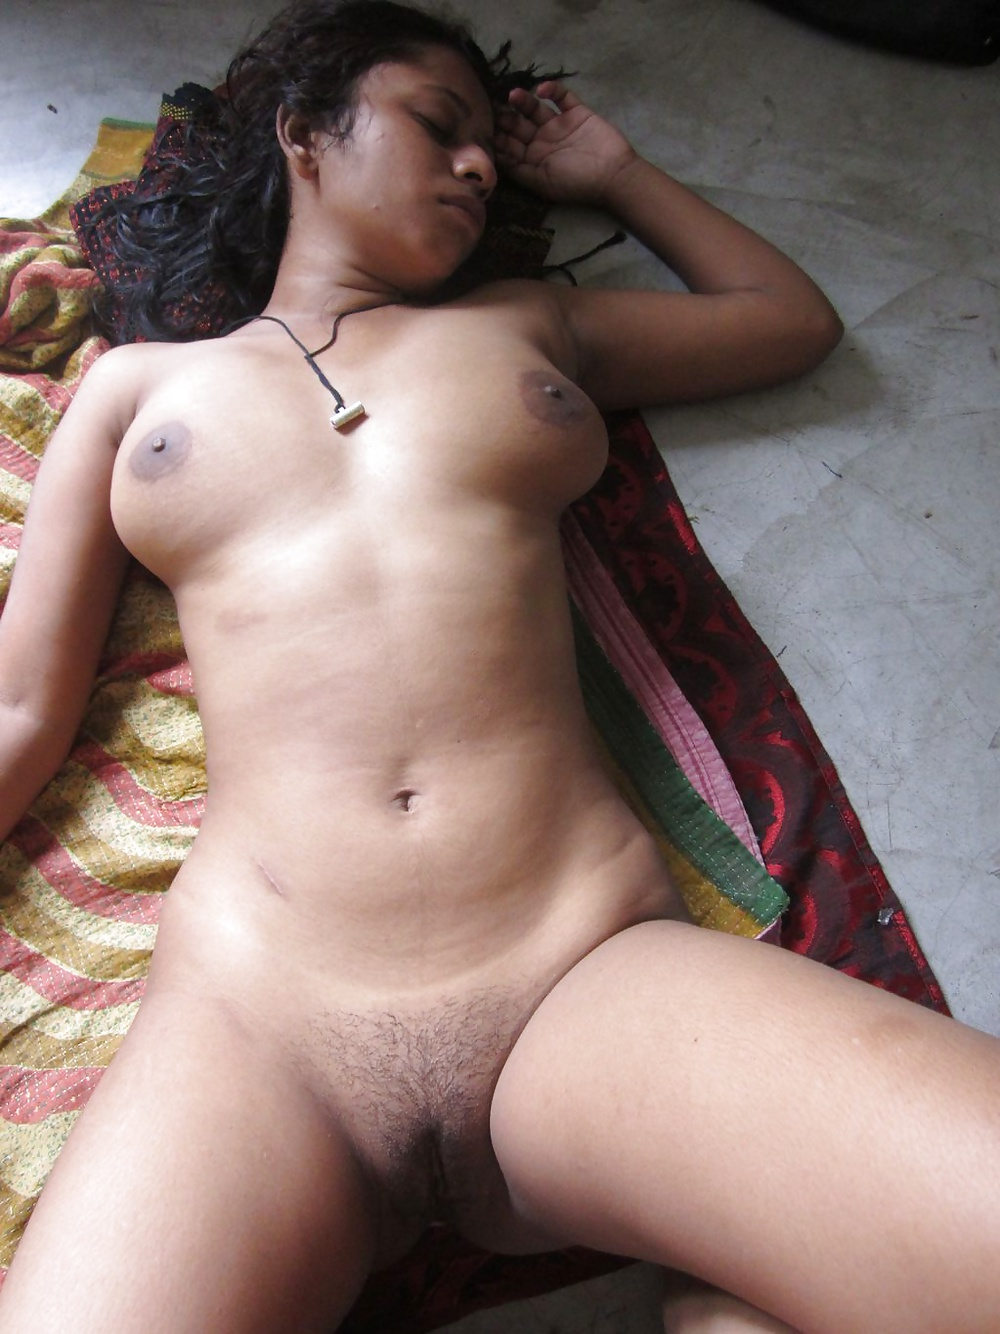 voyeur-indian-desi-girl-porn-females-nude-hot